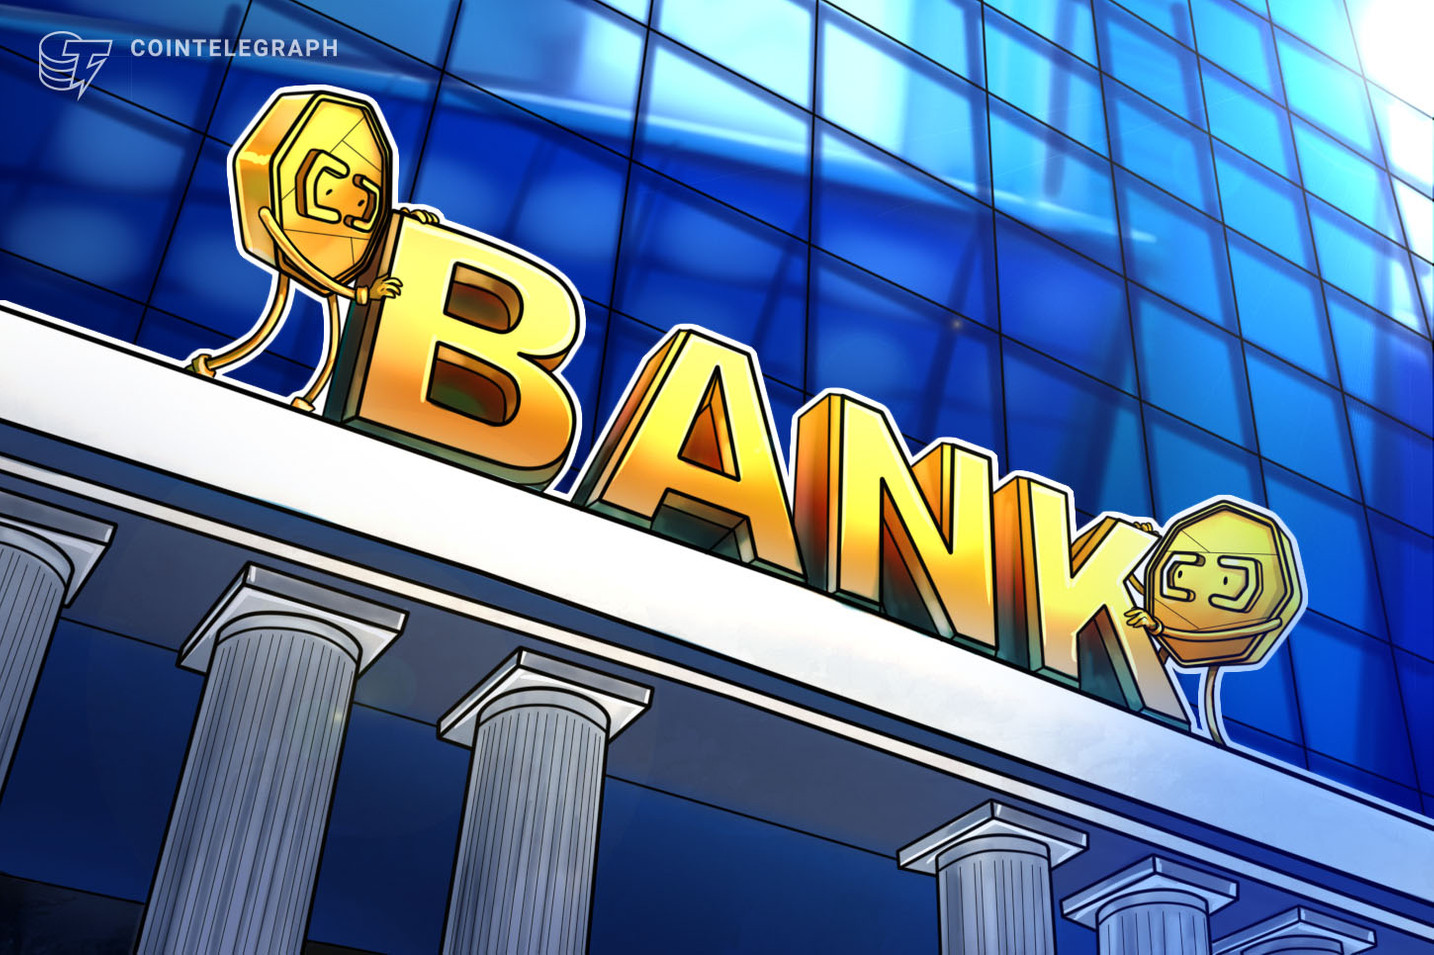 Central Bank Digital Currencies and Their Role in the Financial System